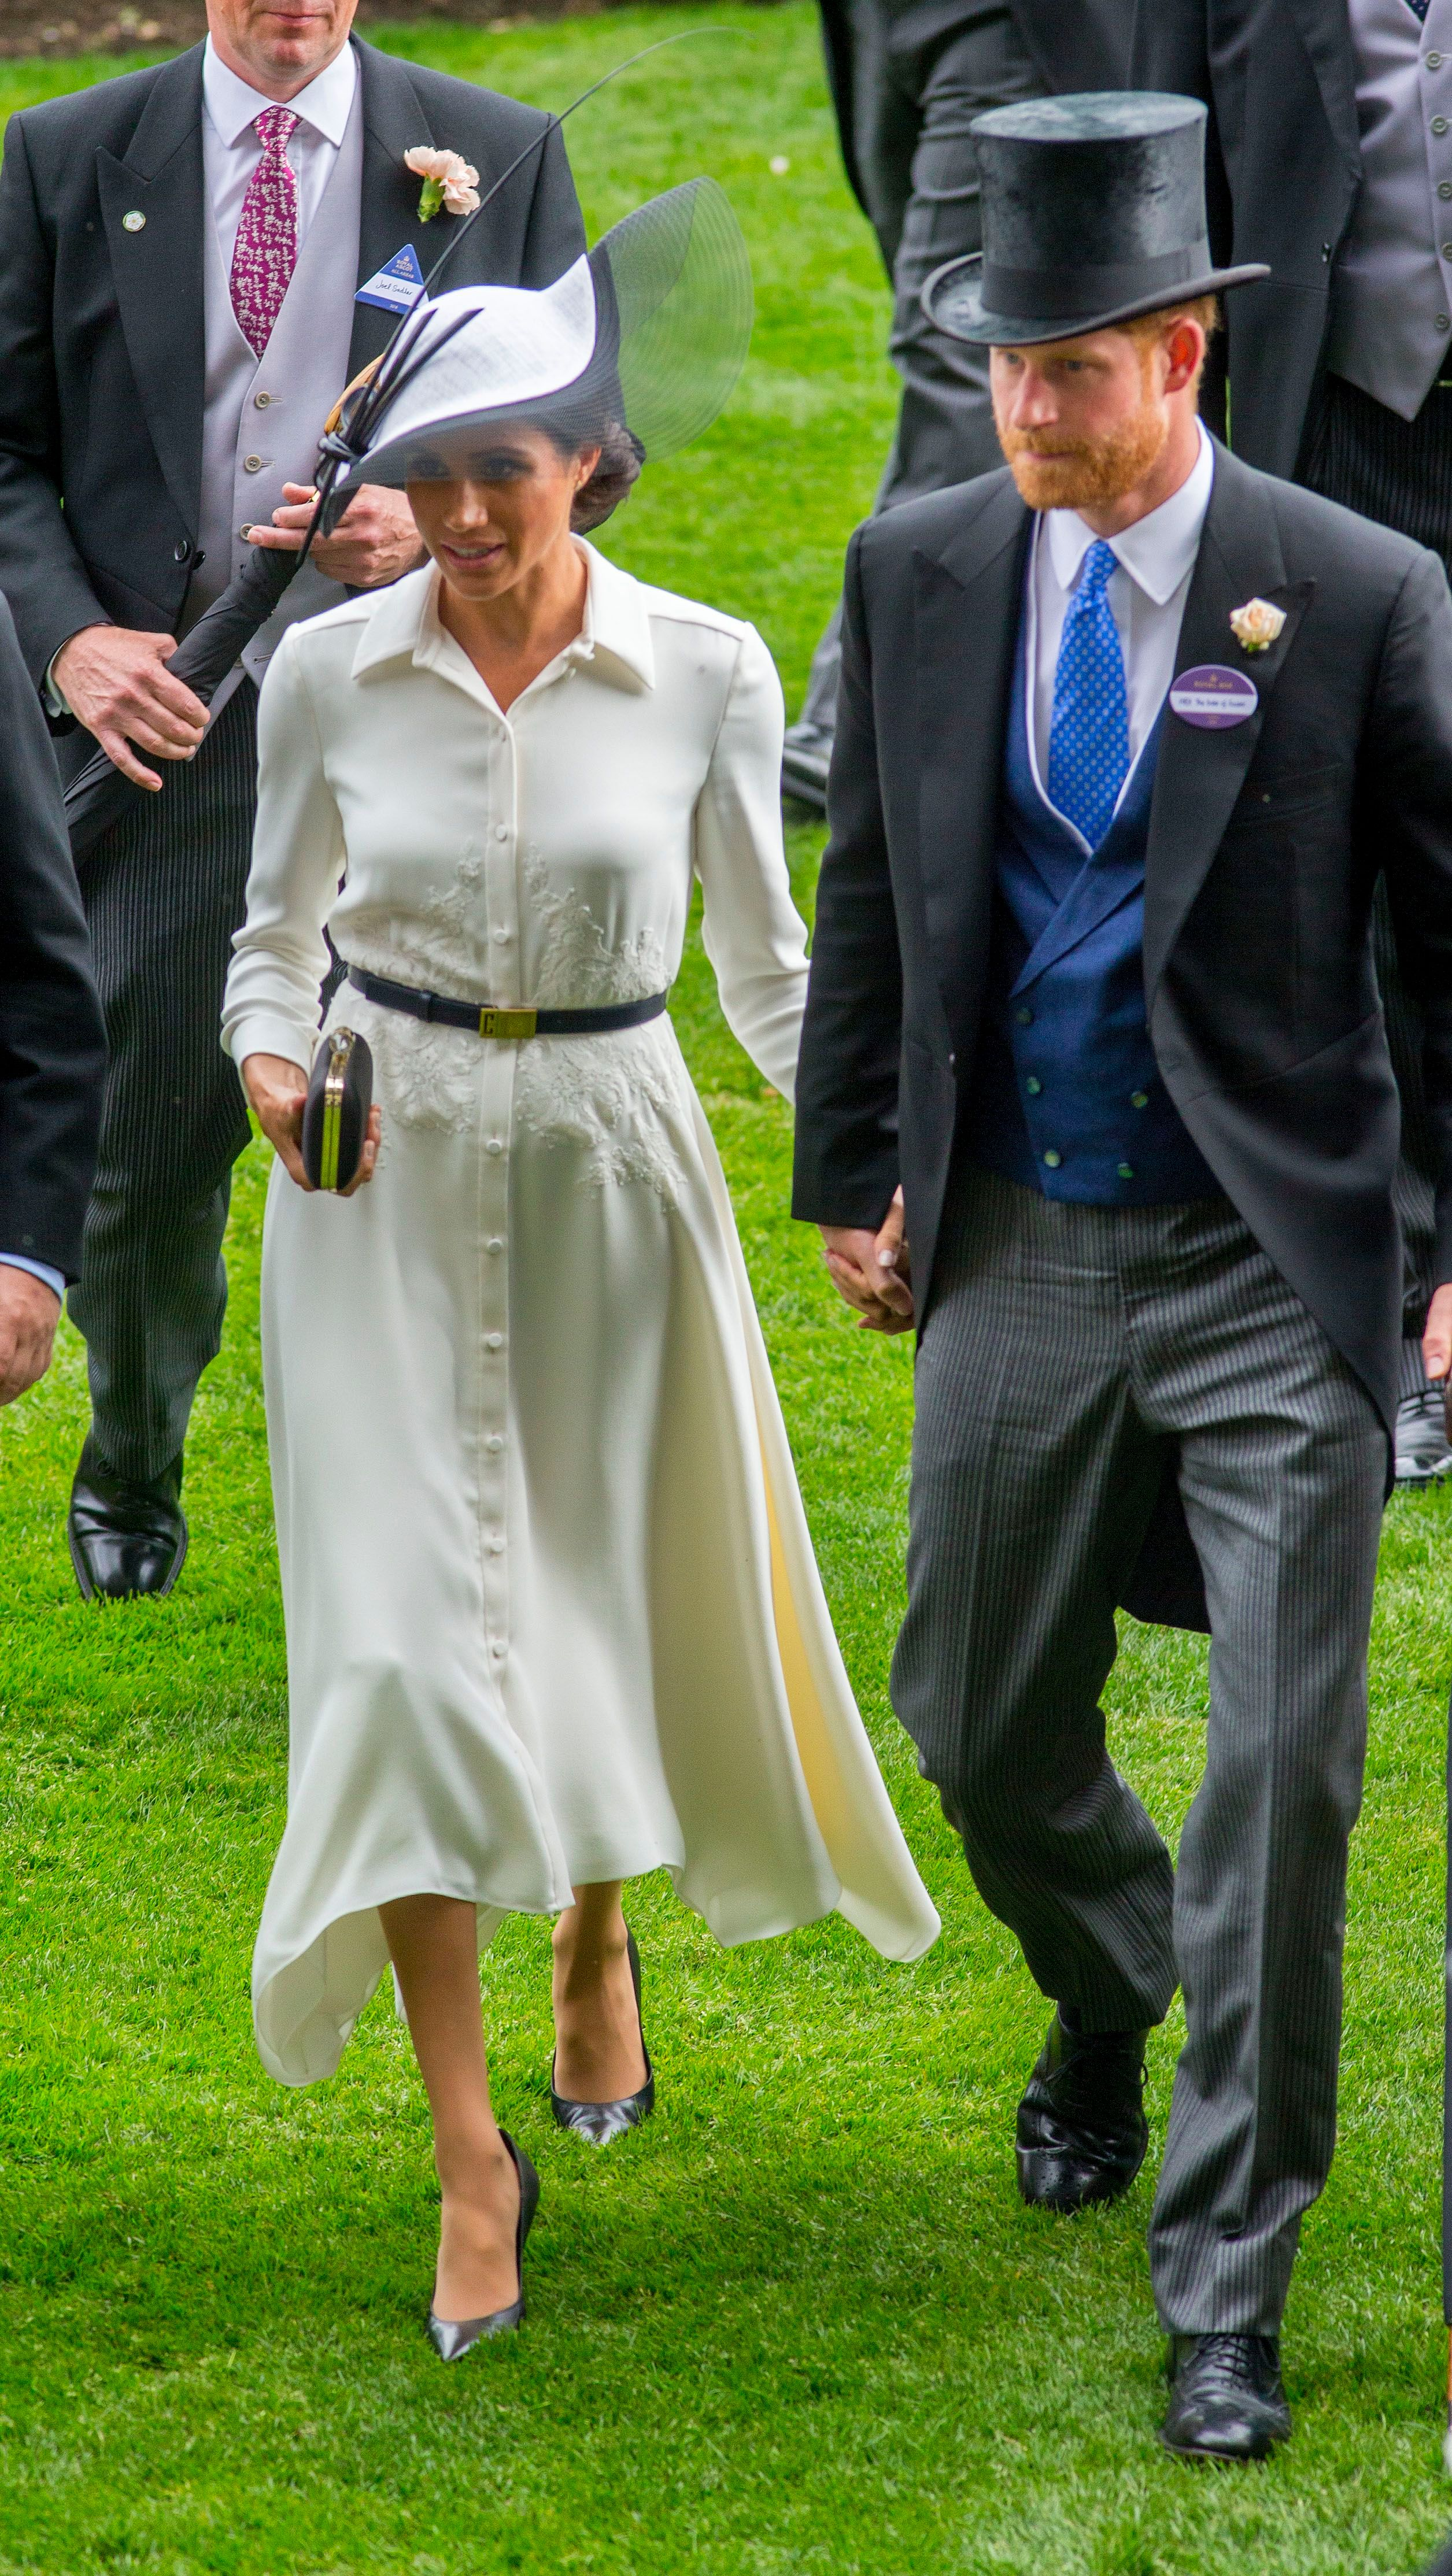 Meghan Duchess of Sussex and Prince HarryRoyal Ascot, Day One, UK - 19 Jun 2018WEARING GIVENCHY HAT BY PHILIP TREACY